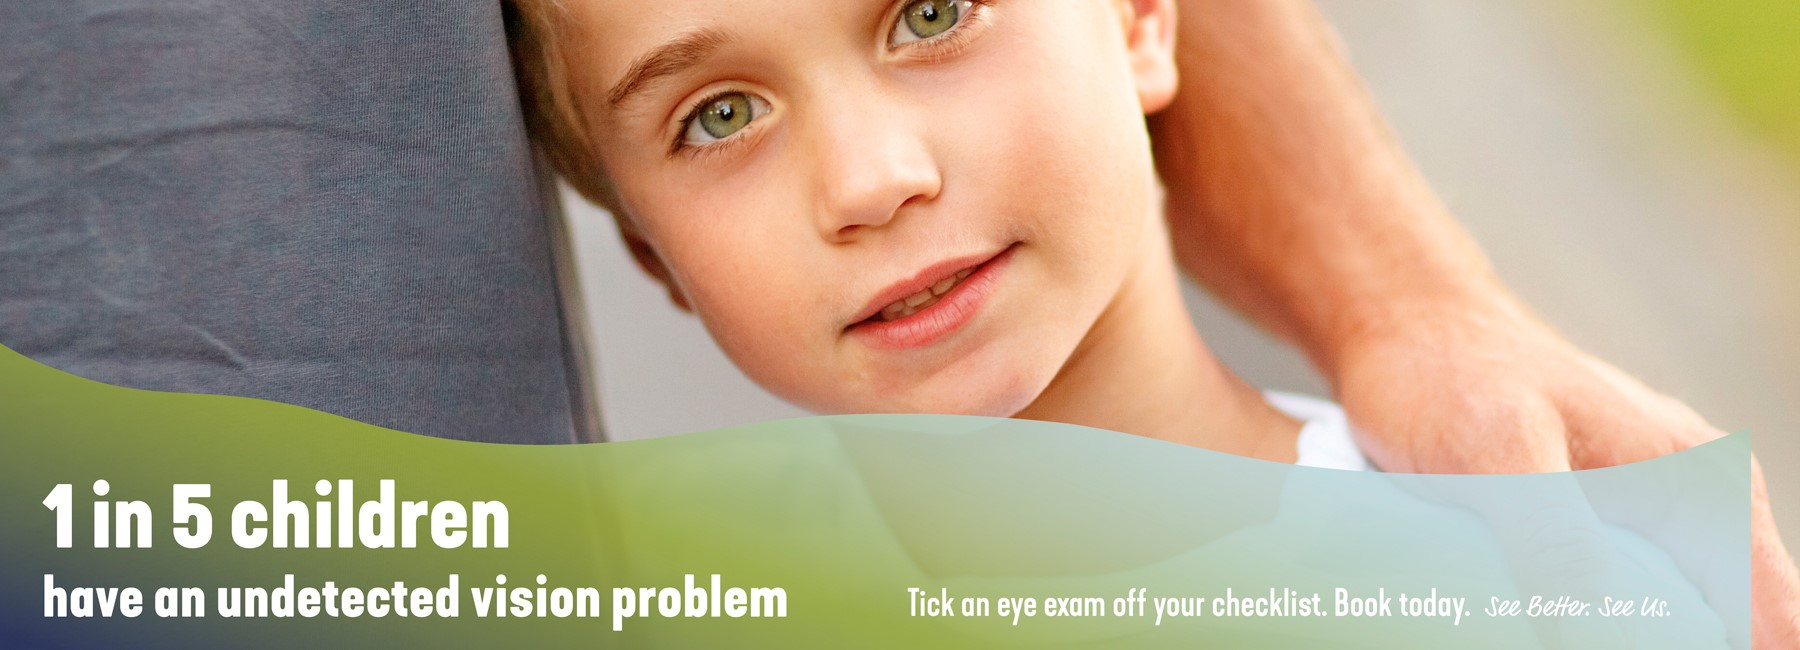 Childrens Vision Optometrist 1 in 5 With Undetected Problems